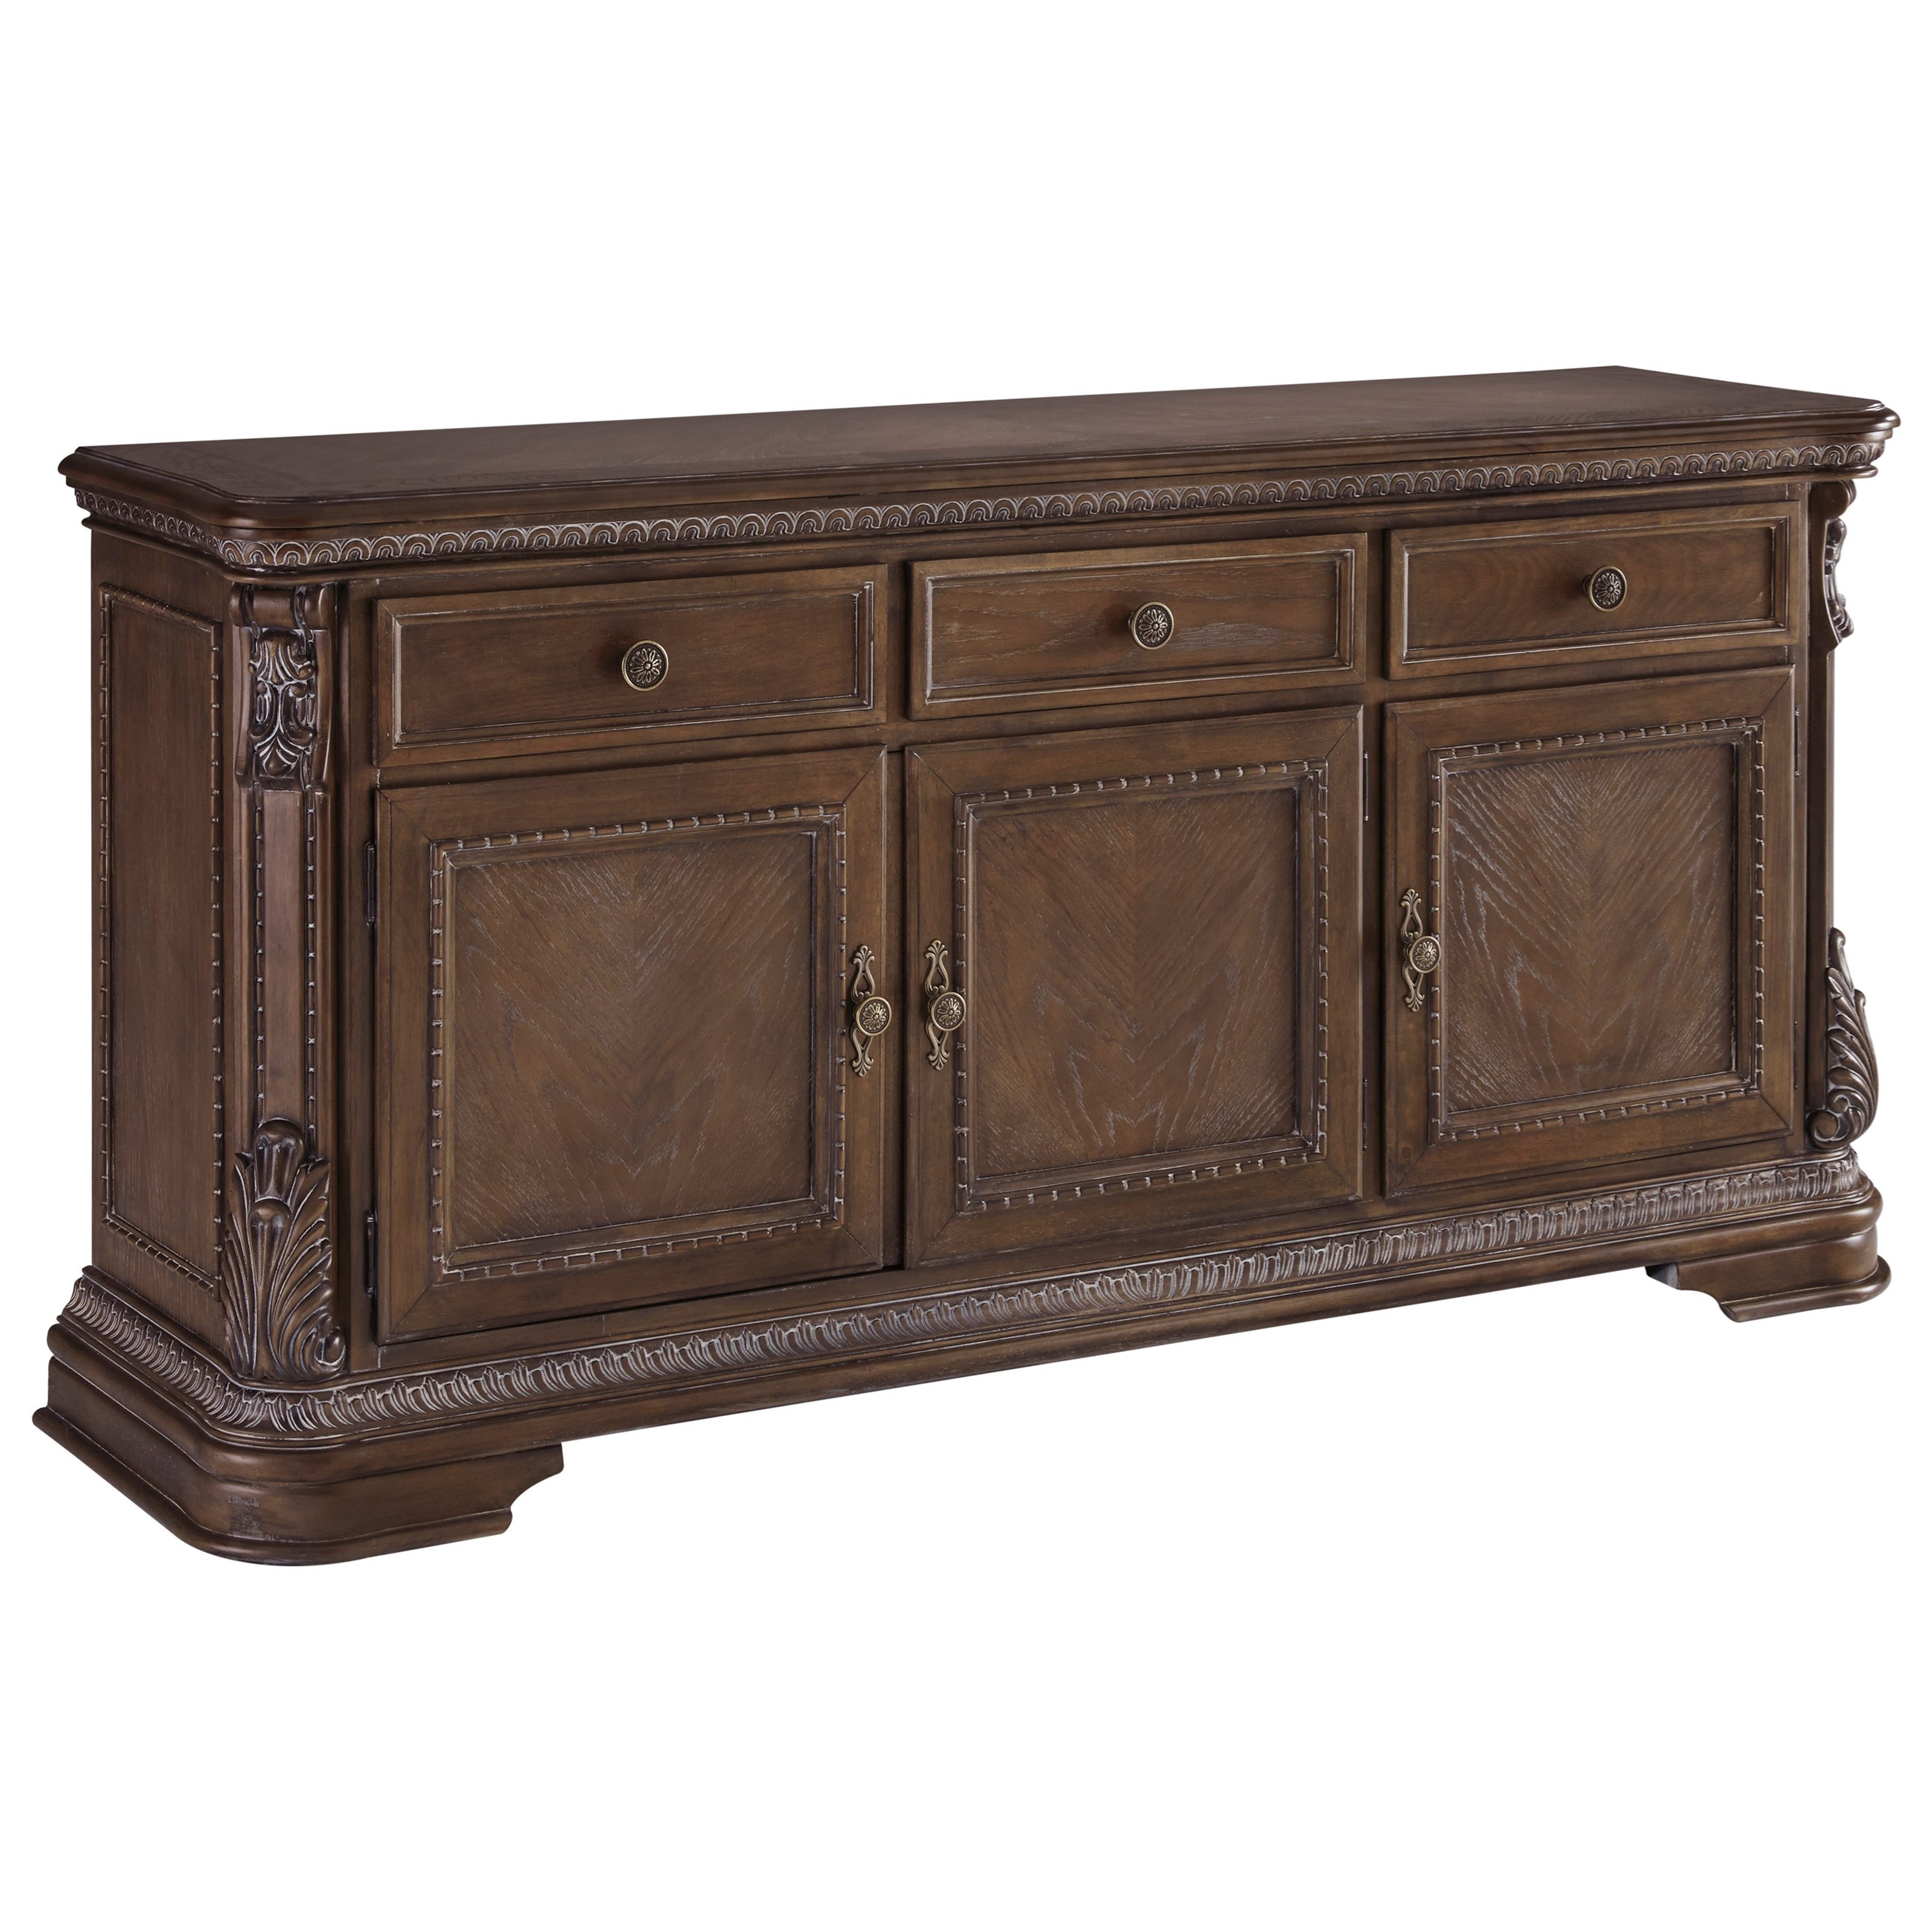 Charmond Dining Room Buffet by Signature Design by Ashley at Beck's Furniture